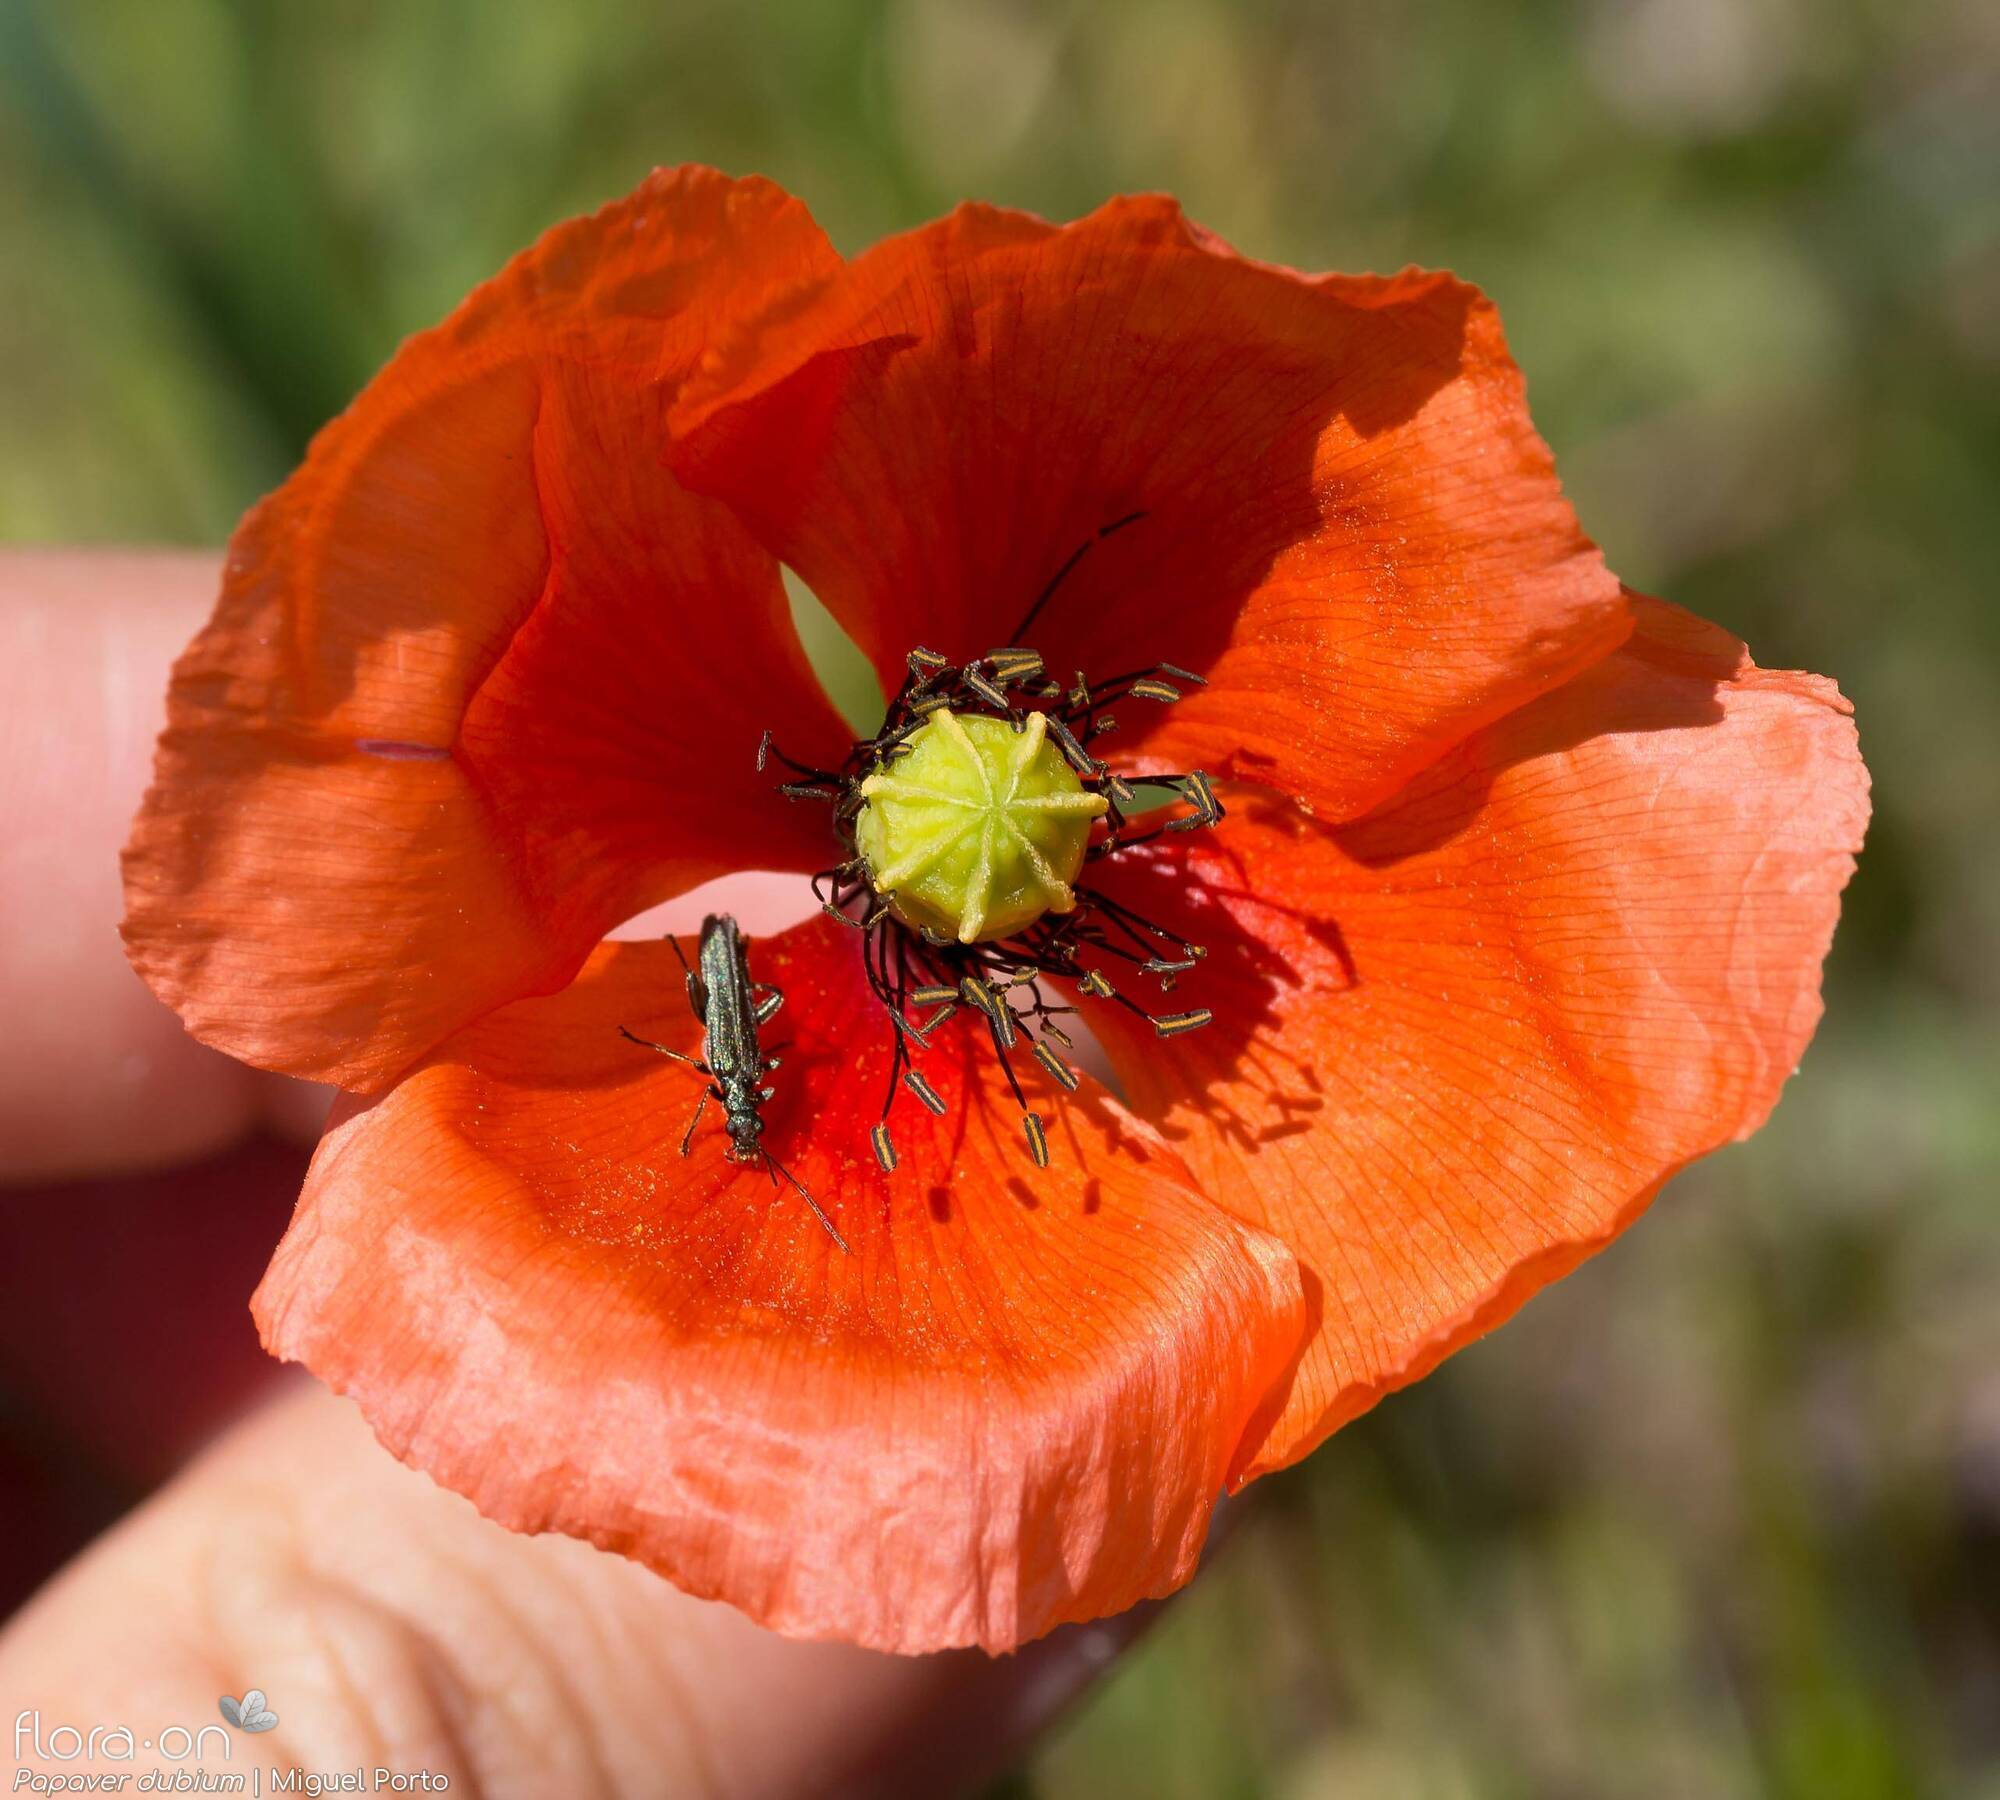 Papaver dubium - Flor (close-up) | Miguel Porto; CC BY-NC 4.0